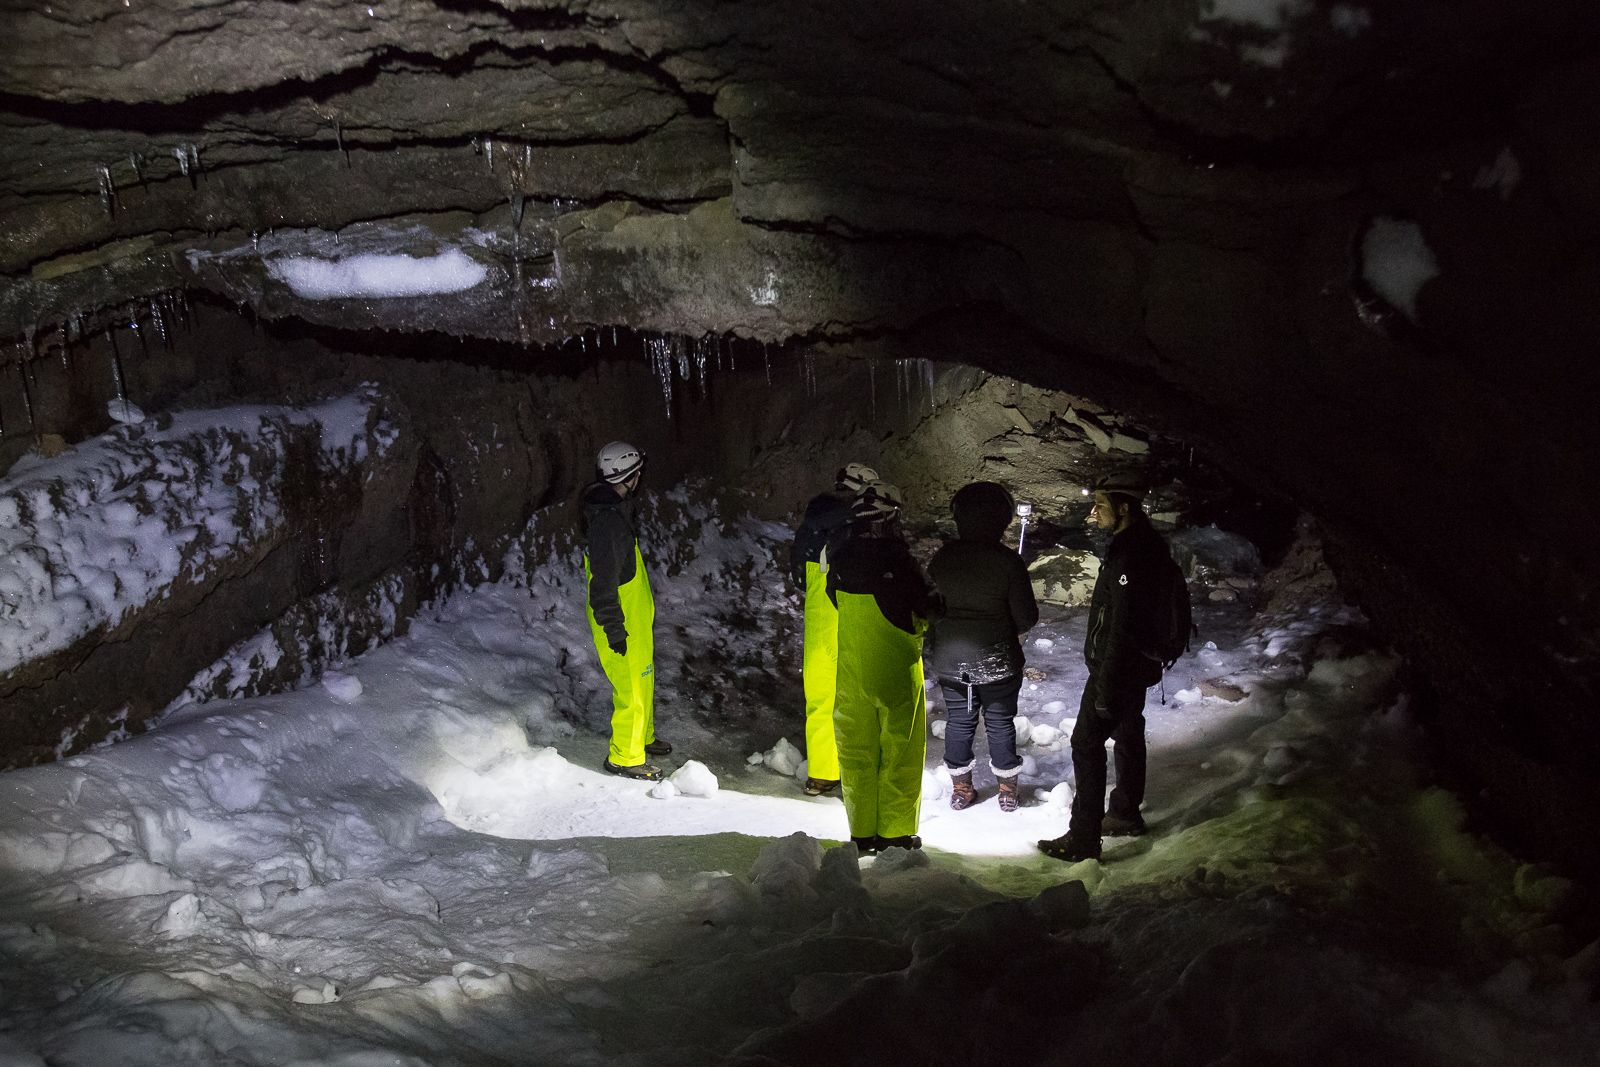 Leiðarendi cave is a large lave tube close to Reykjavik.